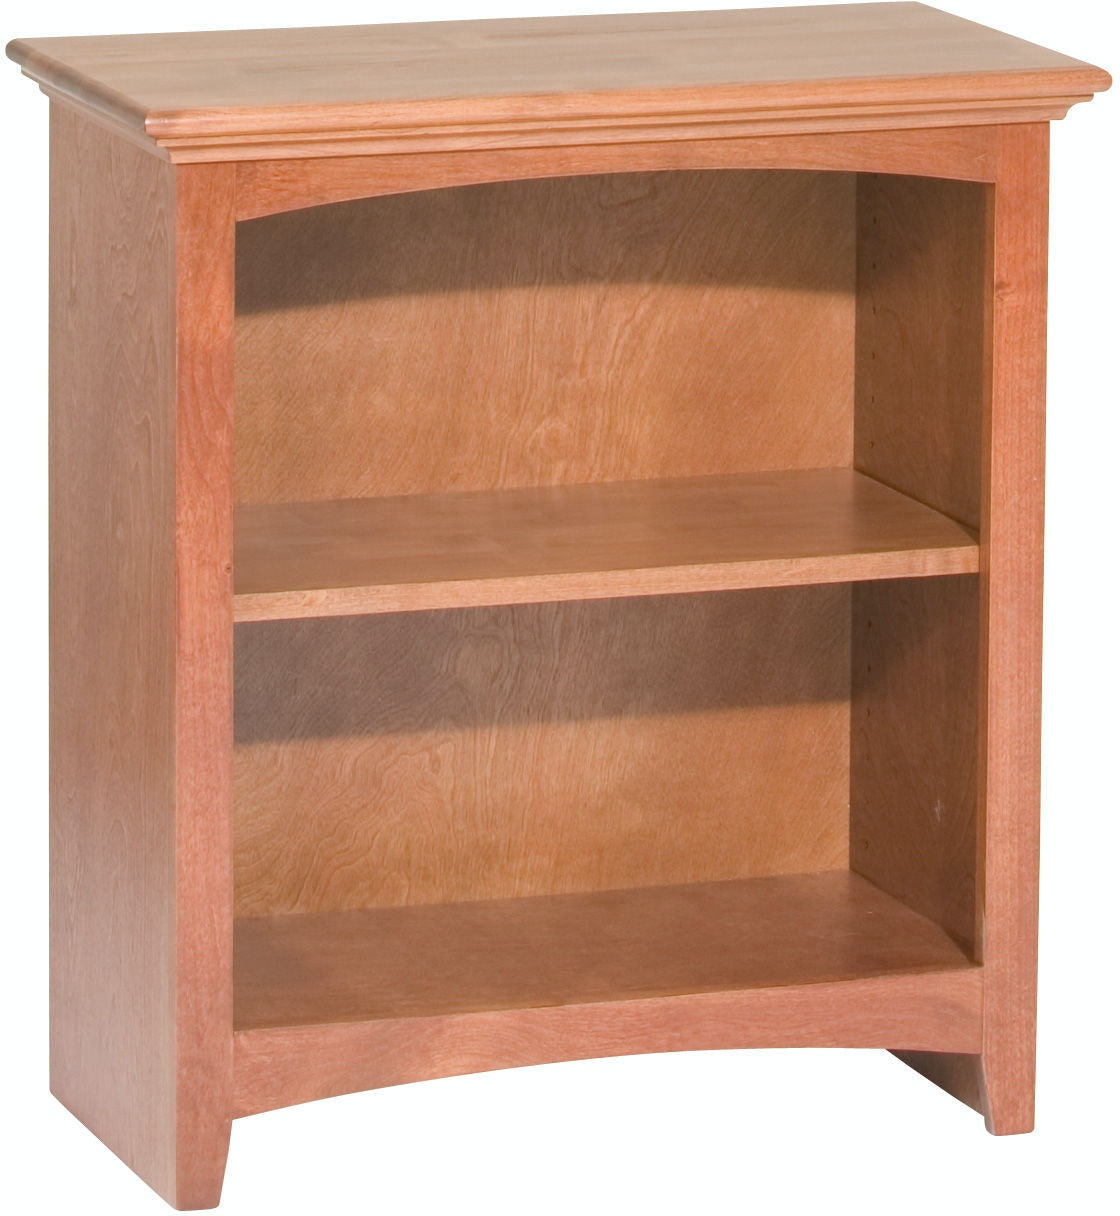 Whittier Wood Products Gac 29 H X 24 W Mckenzie Alder Bookcase